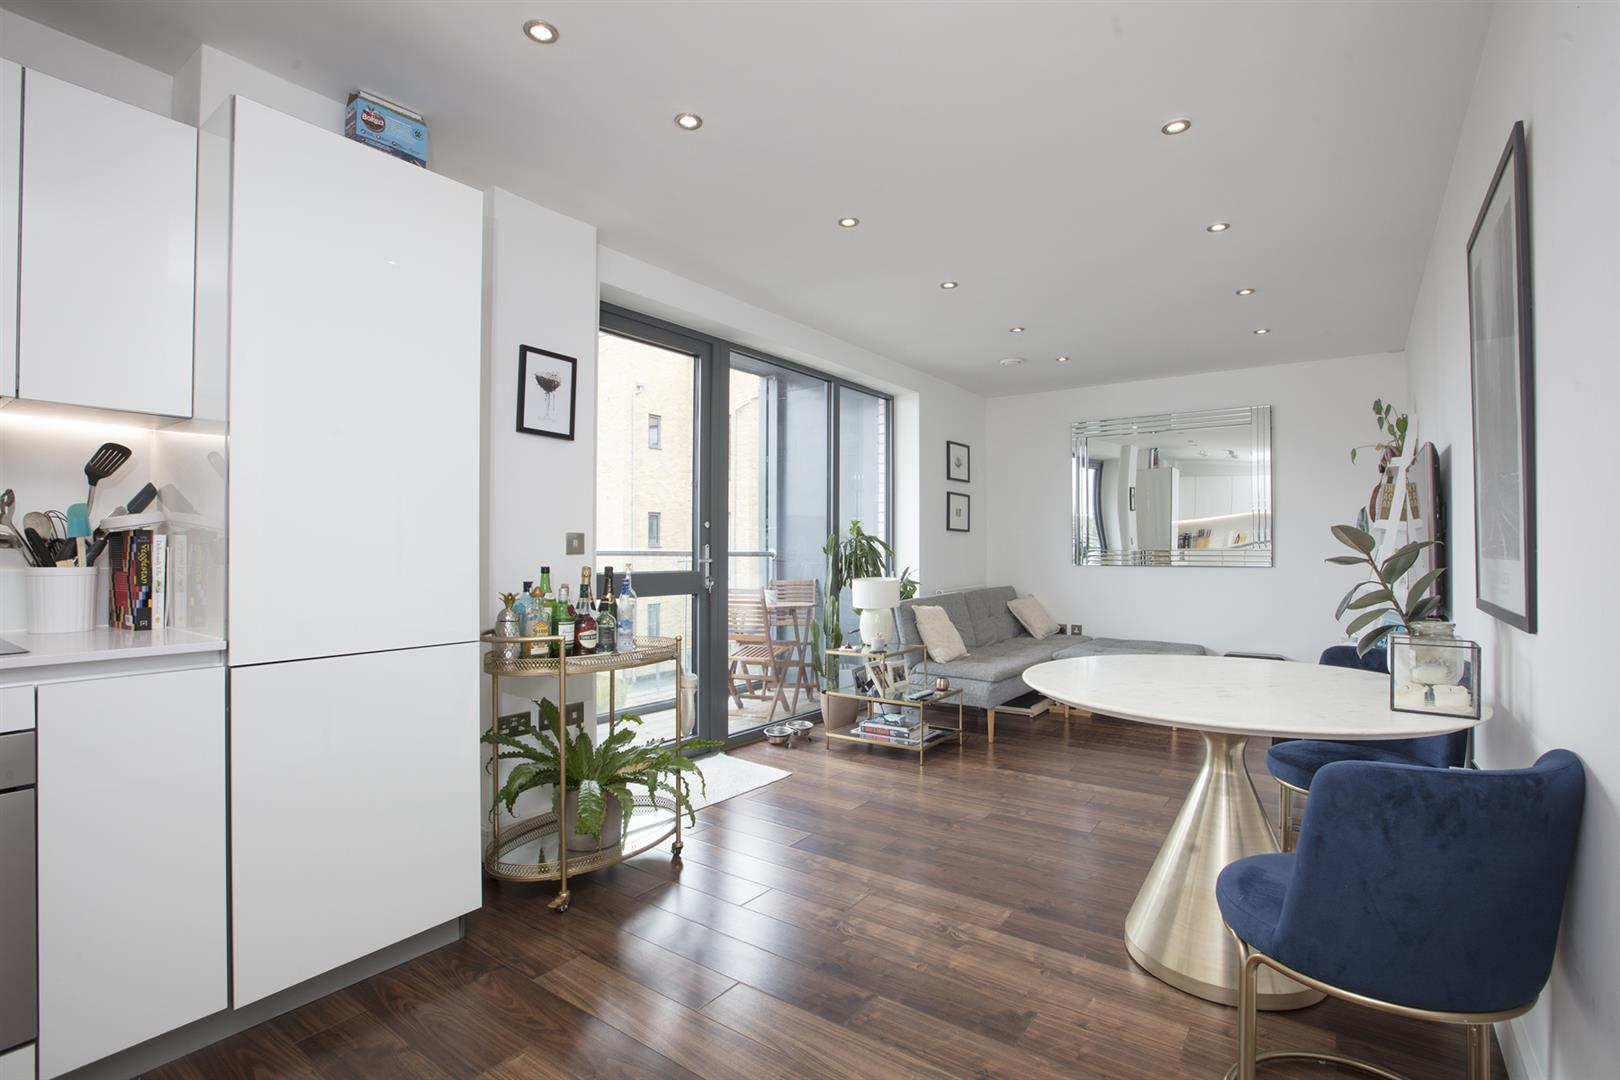 Flat - Purpose Built Sale Agreed in Carlton Grove, Peckham, SE15 605 view6